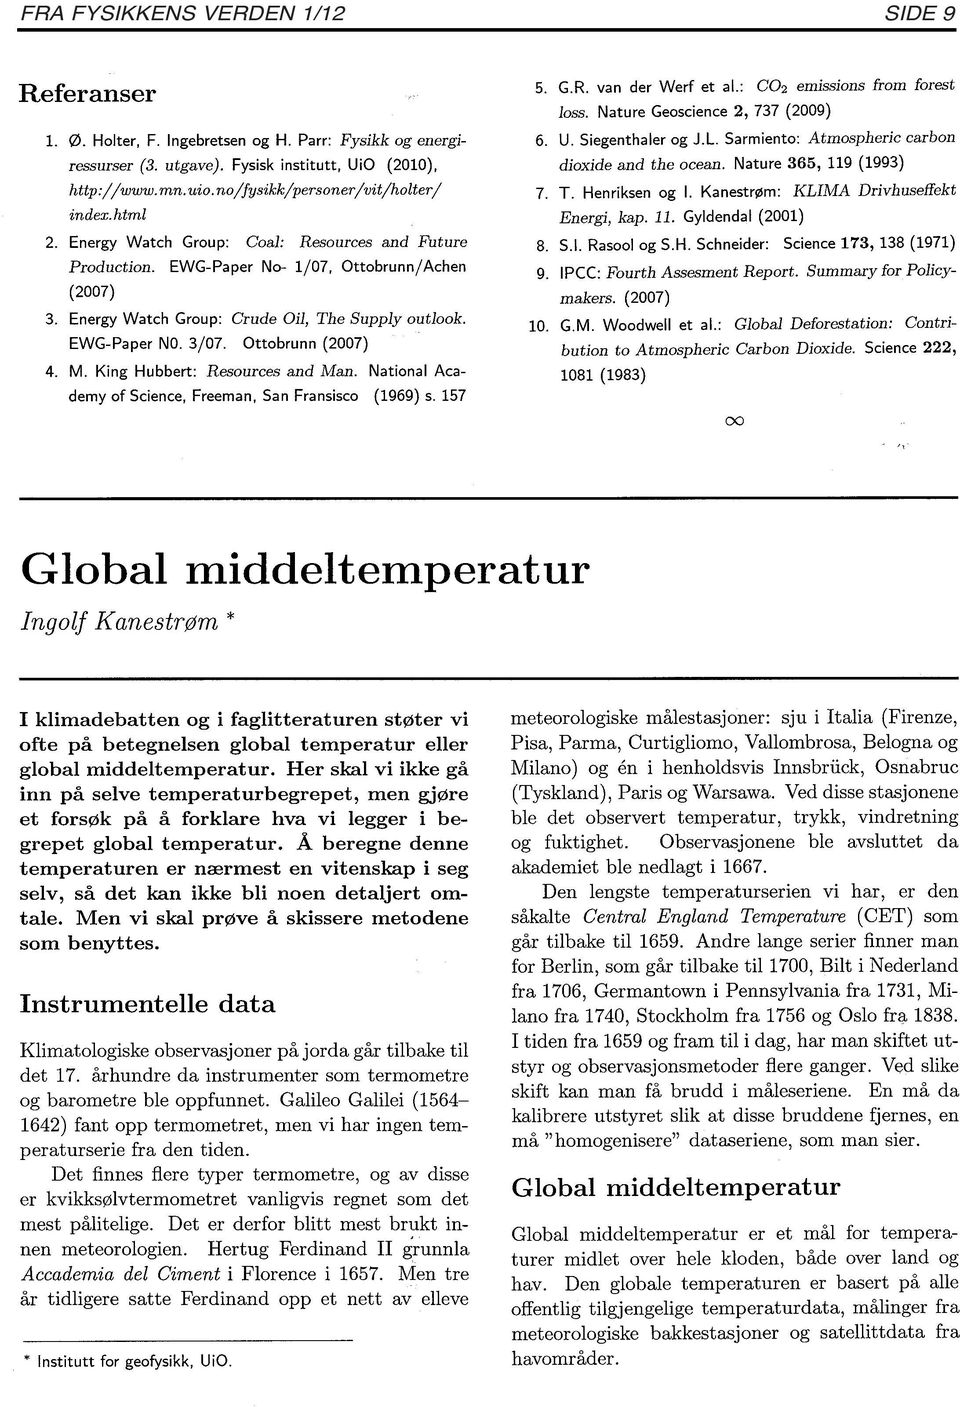 EWG-Paper NO. 3/07. Ottobrunn (2007) 4. M. King Hubbert: Resources and Man. National Academy of Science, Freeman, San Fransisco (1969) s. 157 5. G.R. van der Werf et al.